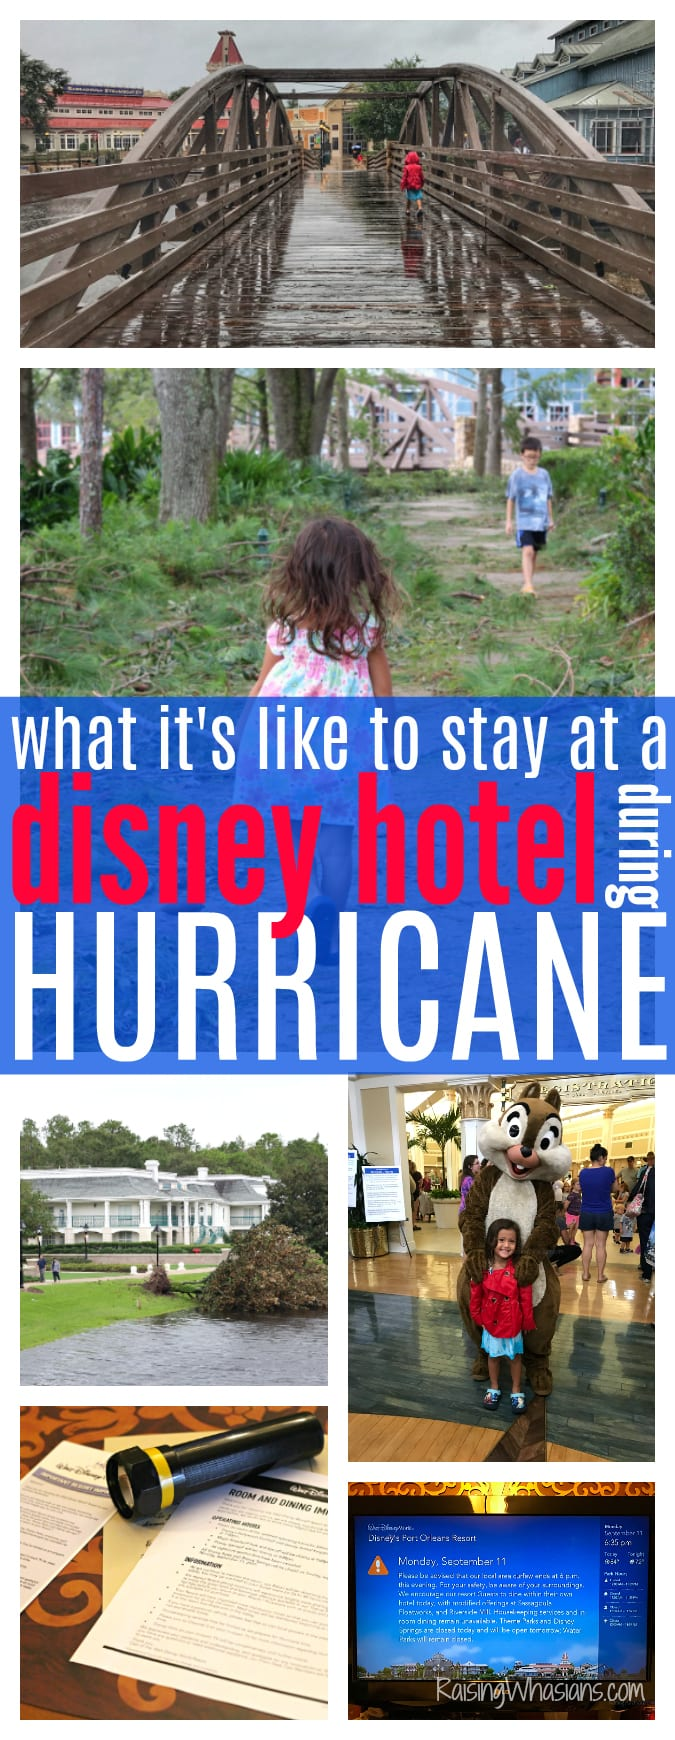 Hurricane Disney hotel tips - Would you evacuate to a Disney Hotel during a Hurricane? Here's what happened when we stayed at a Walt Disney World Resort for Hurricane Irma, MAGIC - Florida hurricane options for families at Disney - #Disney #DisneyHotel #HurricanePreparation #Travel